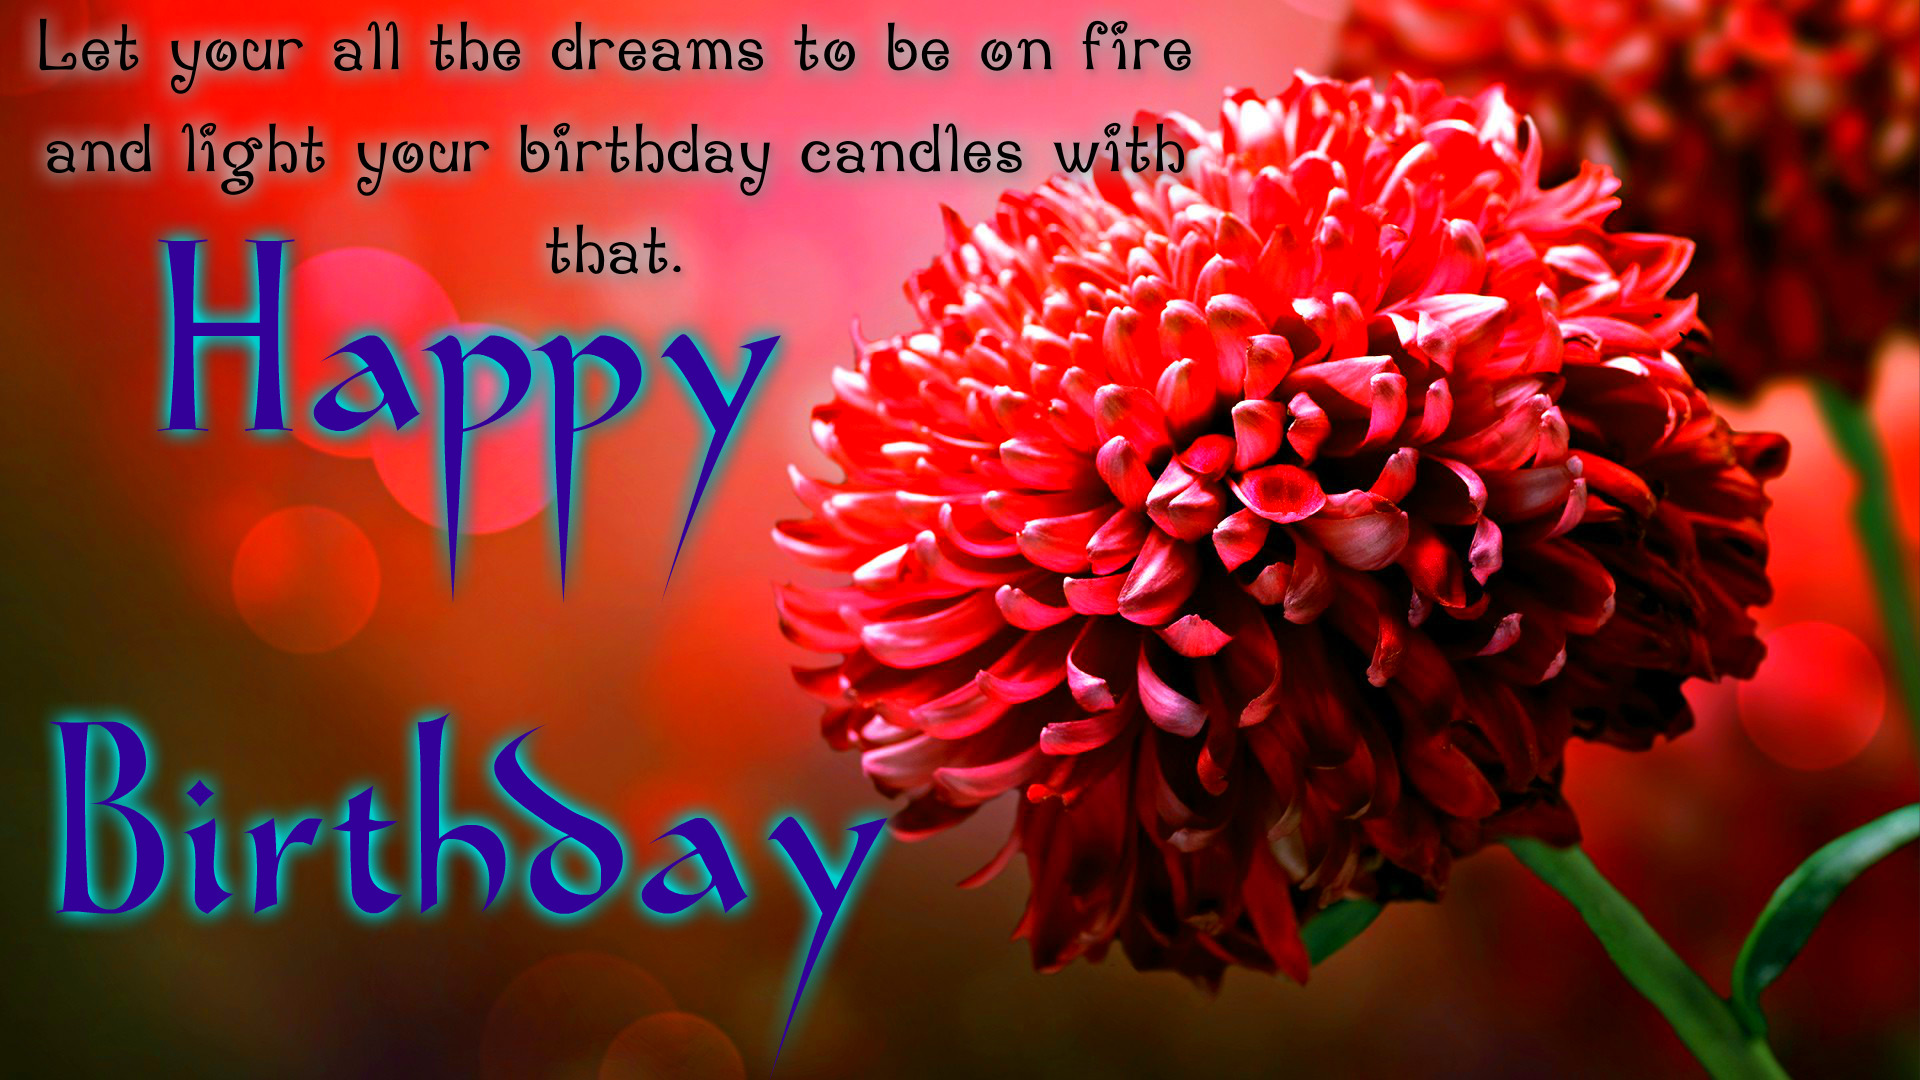 birthday images with quotes free download ; Happy-Birthday-Flowers-2